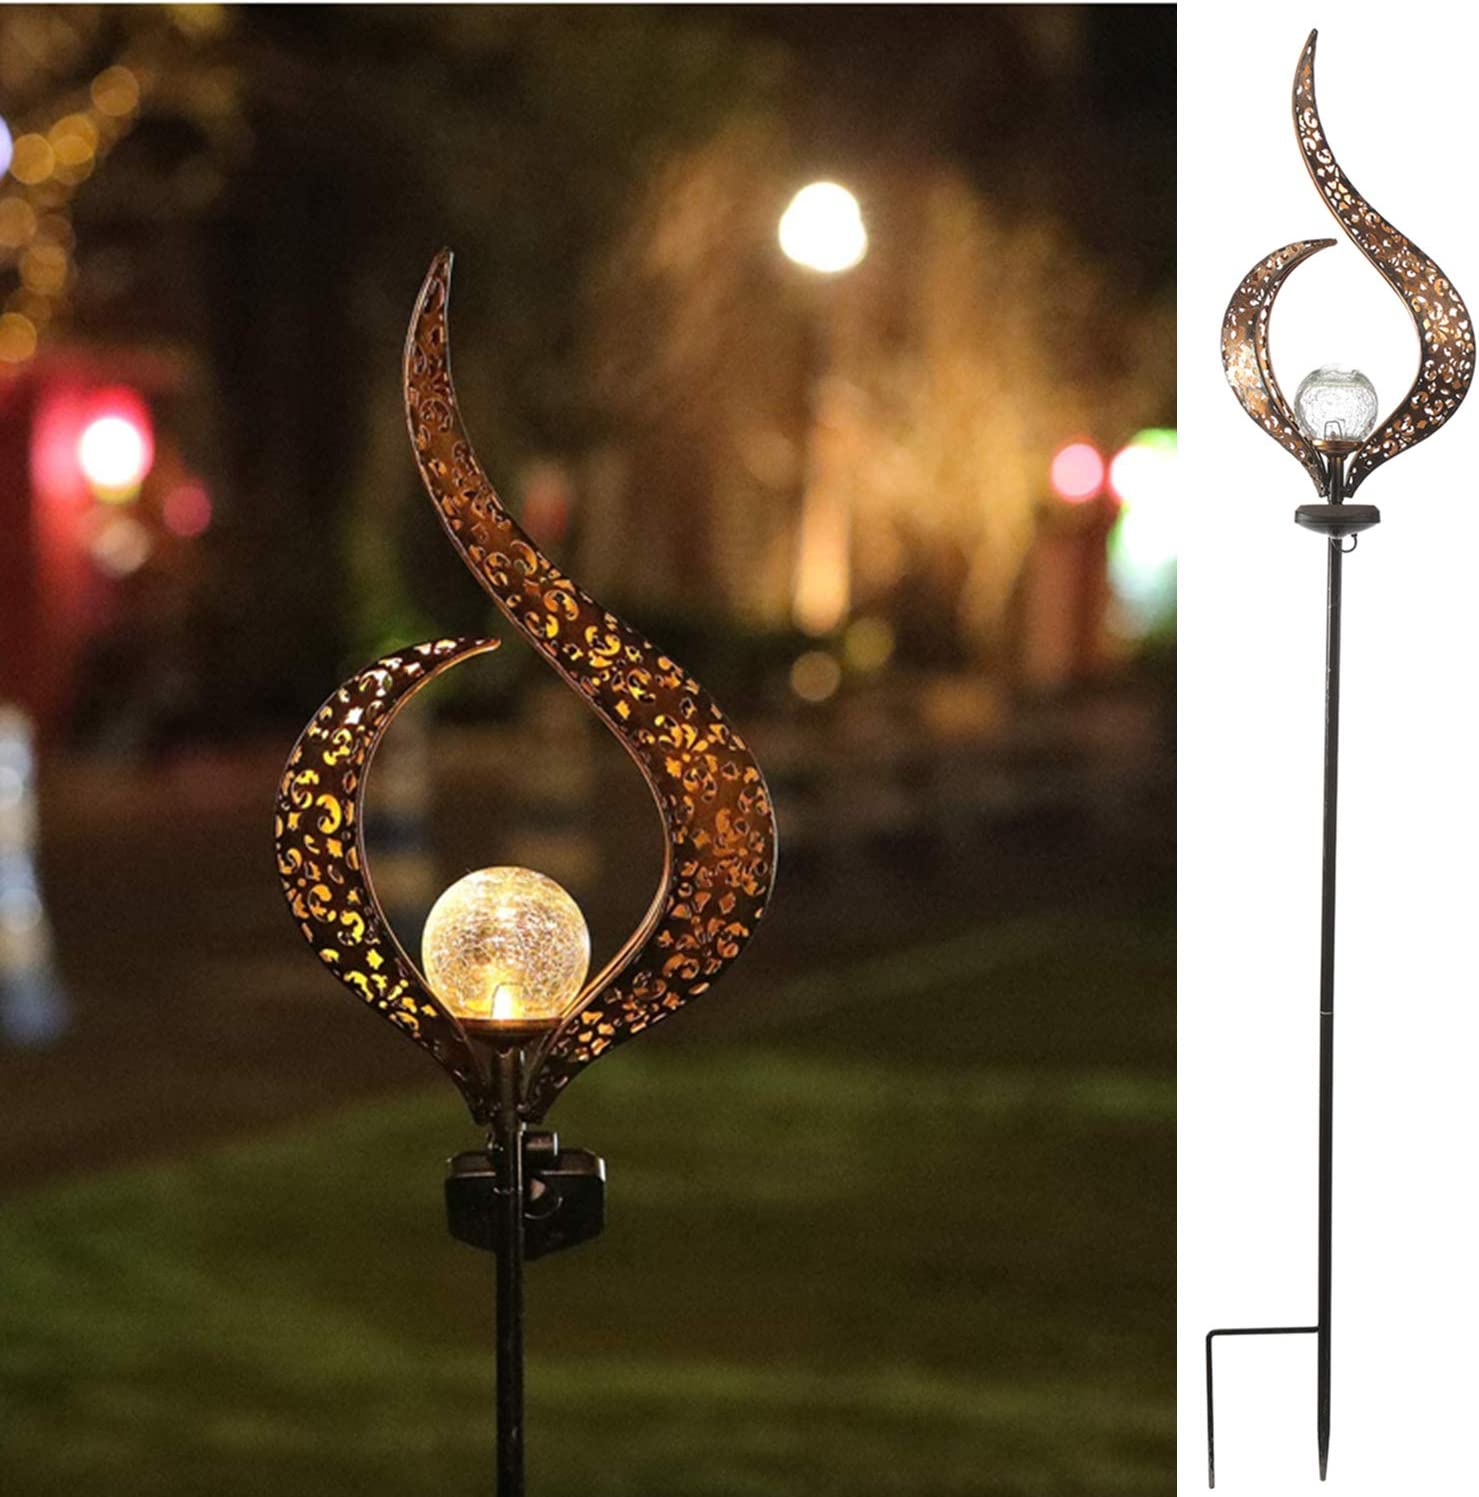 HDNICEZM Garden Solar Light Outdoor Decorative, Flame Crackle Glass Globe Stake Metal Lights,Waterproof Warm White LED for Pathway, Lawn, Patio, Yard.